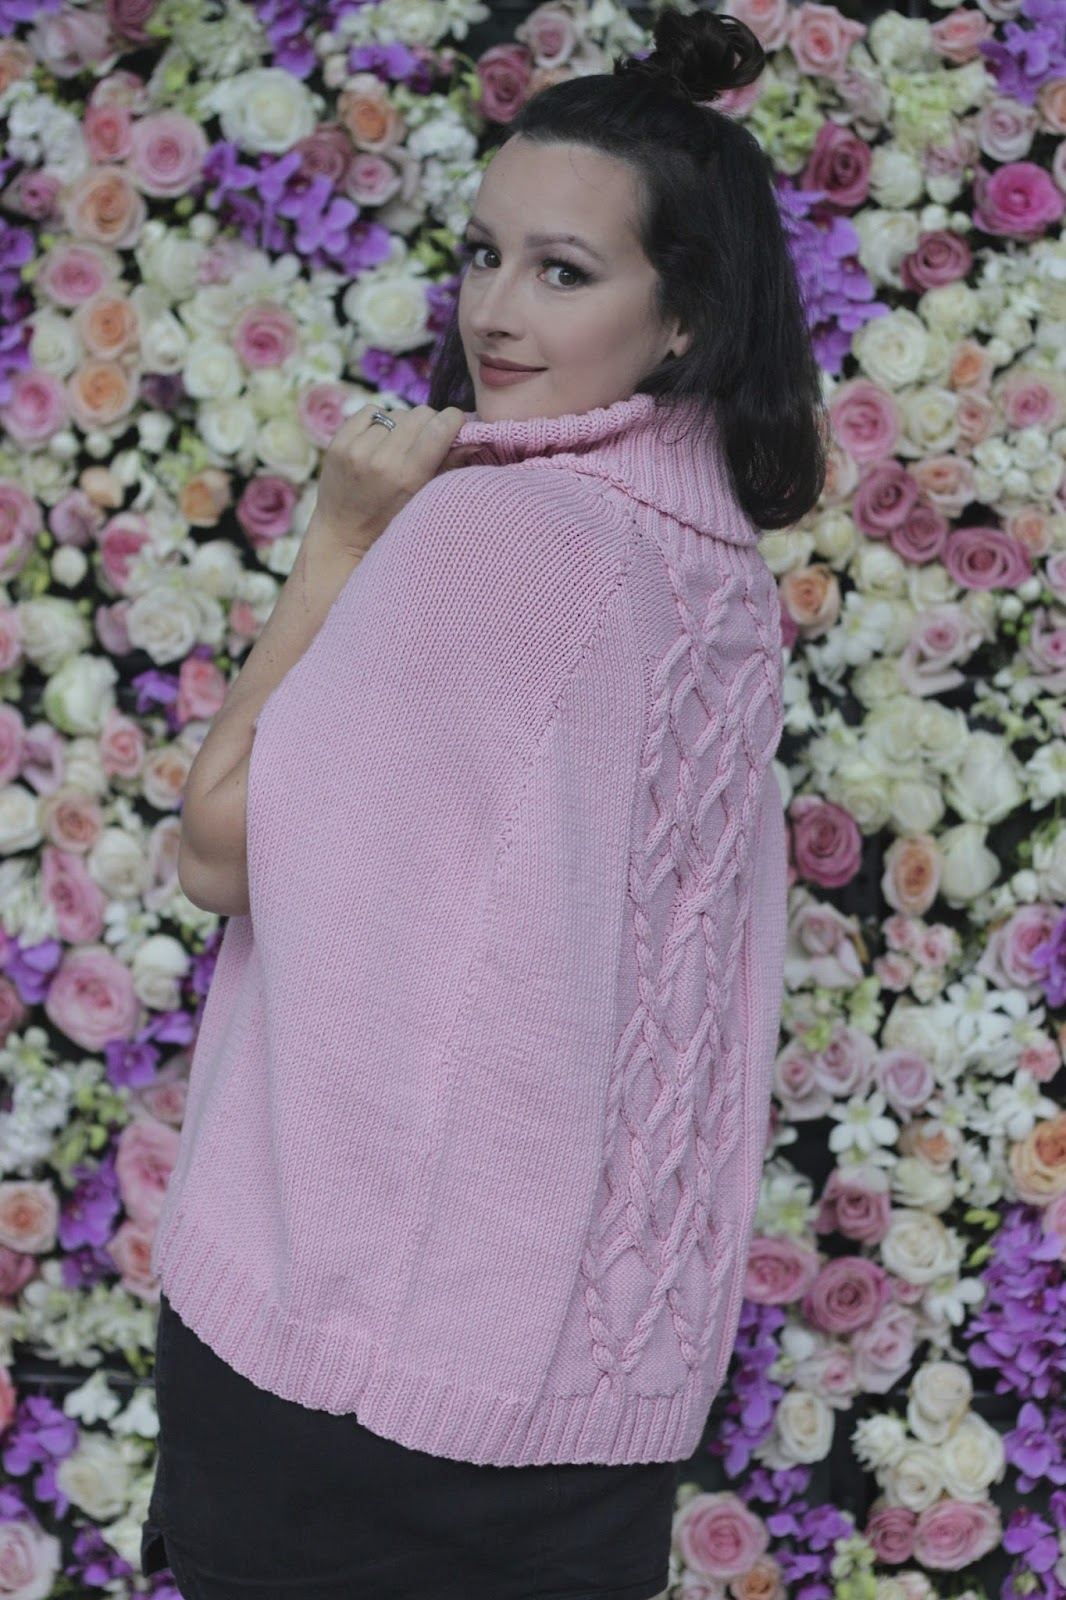 JuliaBobbin: The Knitted Sweater Cape by Cleckheaton Patterns